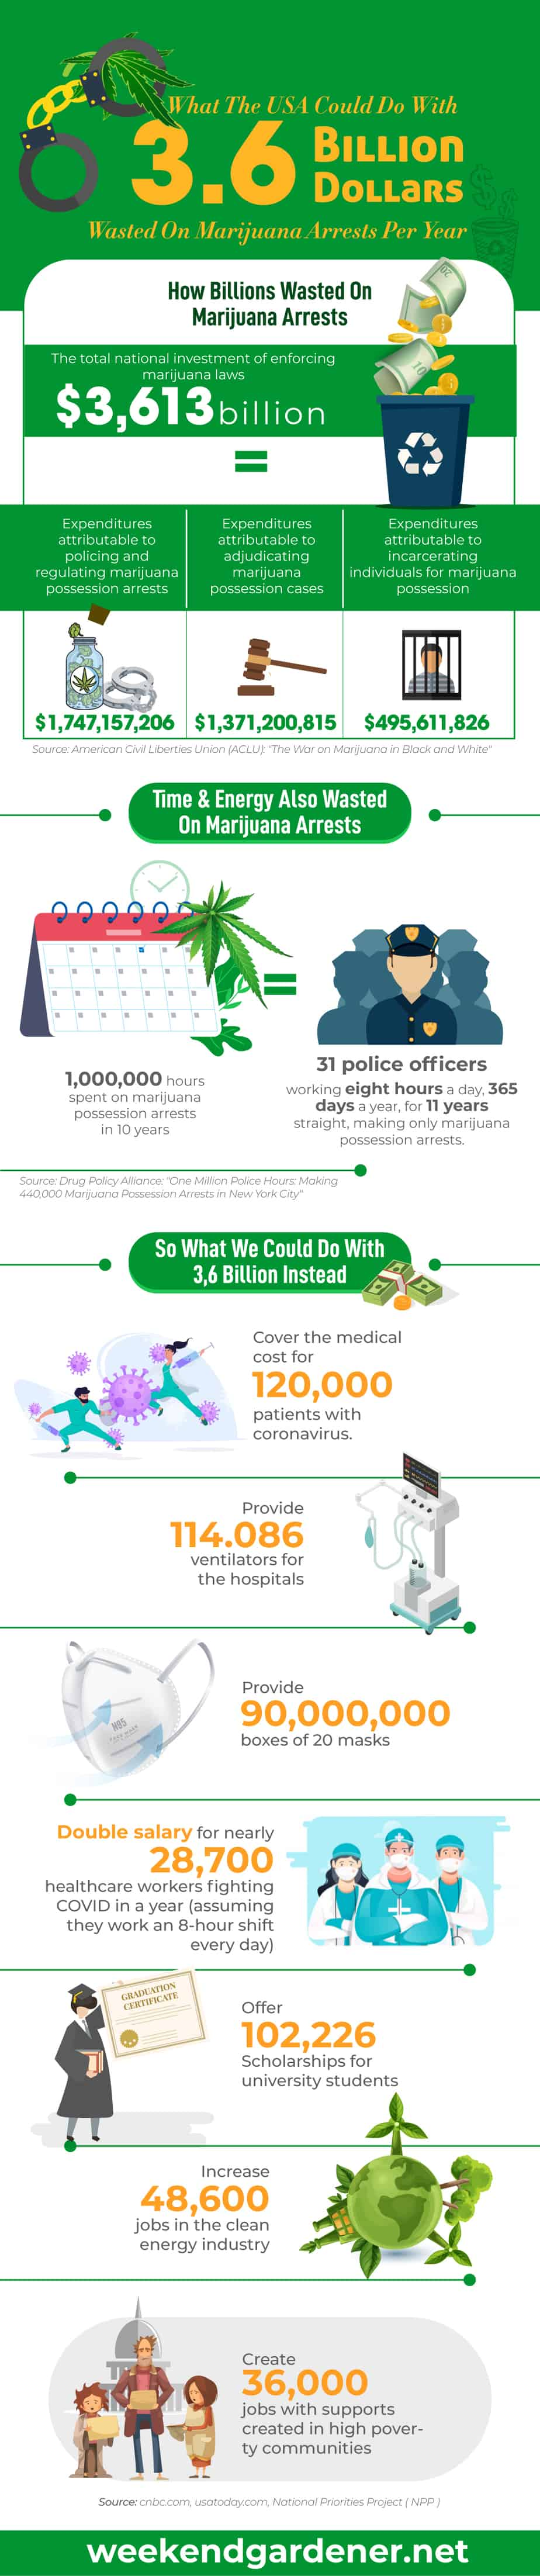 An Infographic shows that the USA wasted 3,6 billion on marijuana arrests per year and what we could do with this money instead for better purposes